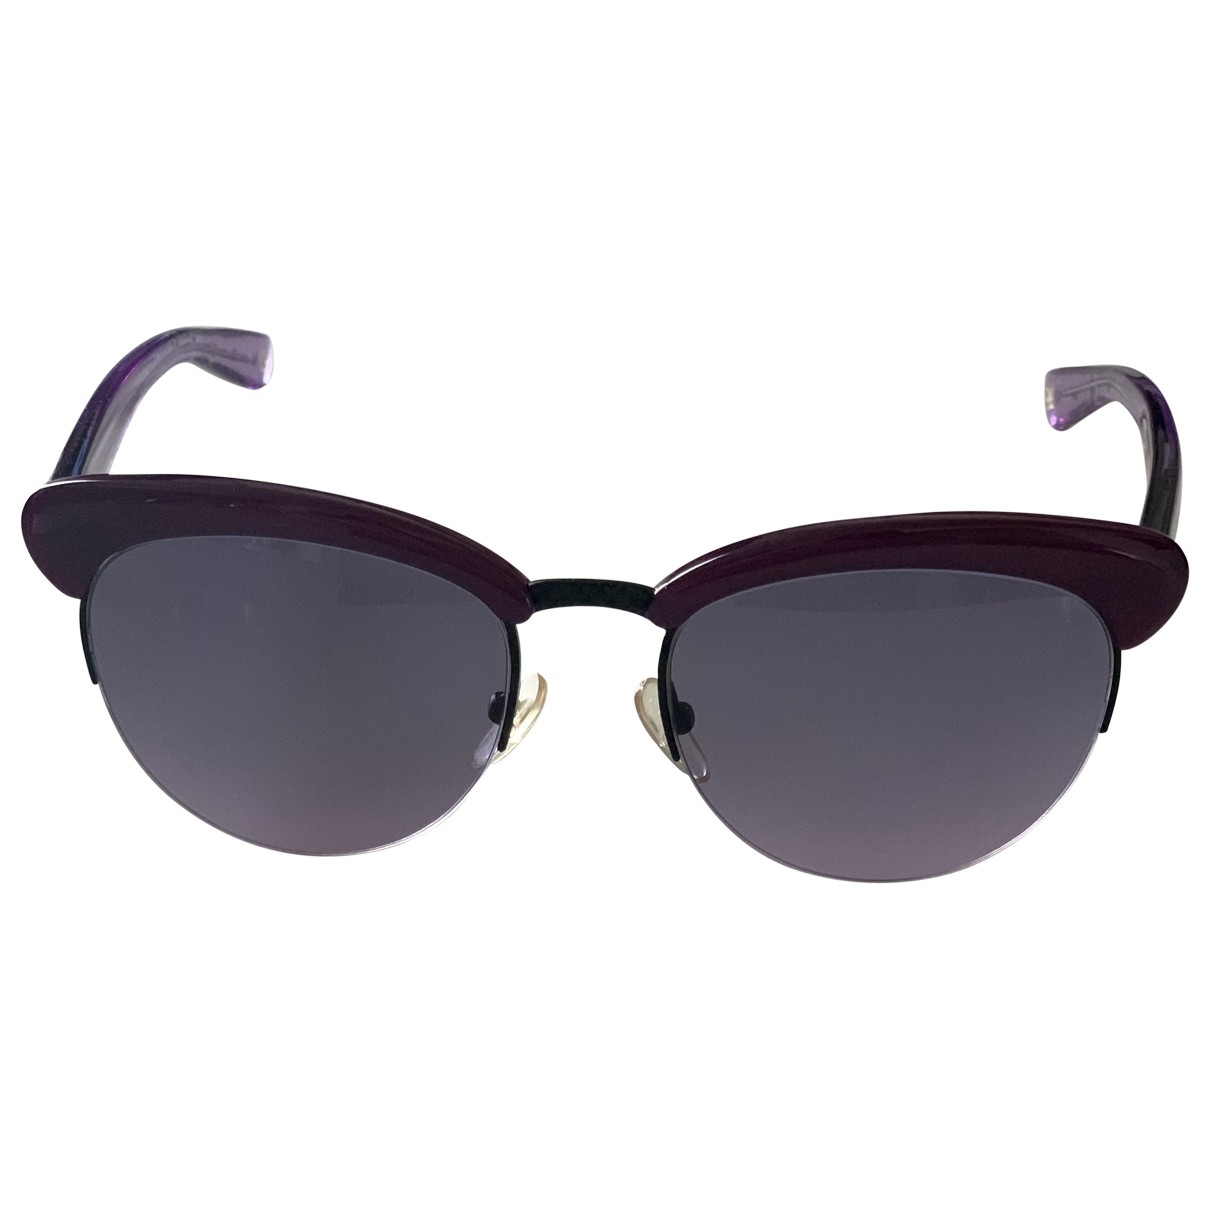 Bottega Veneta \N Purple Sunglasses for Women \N